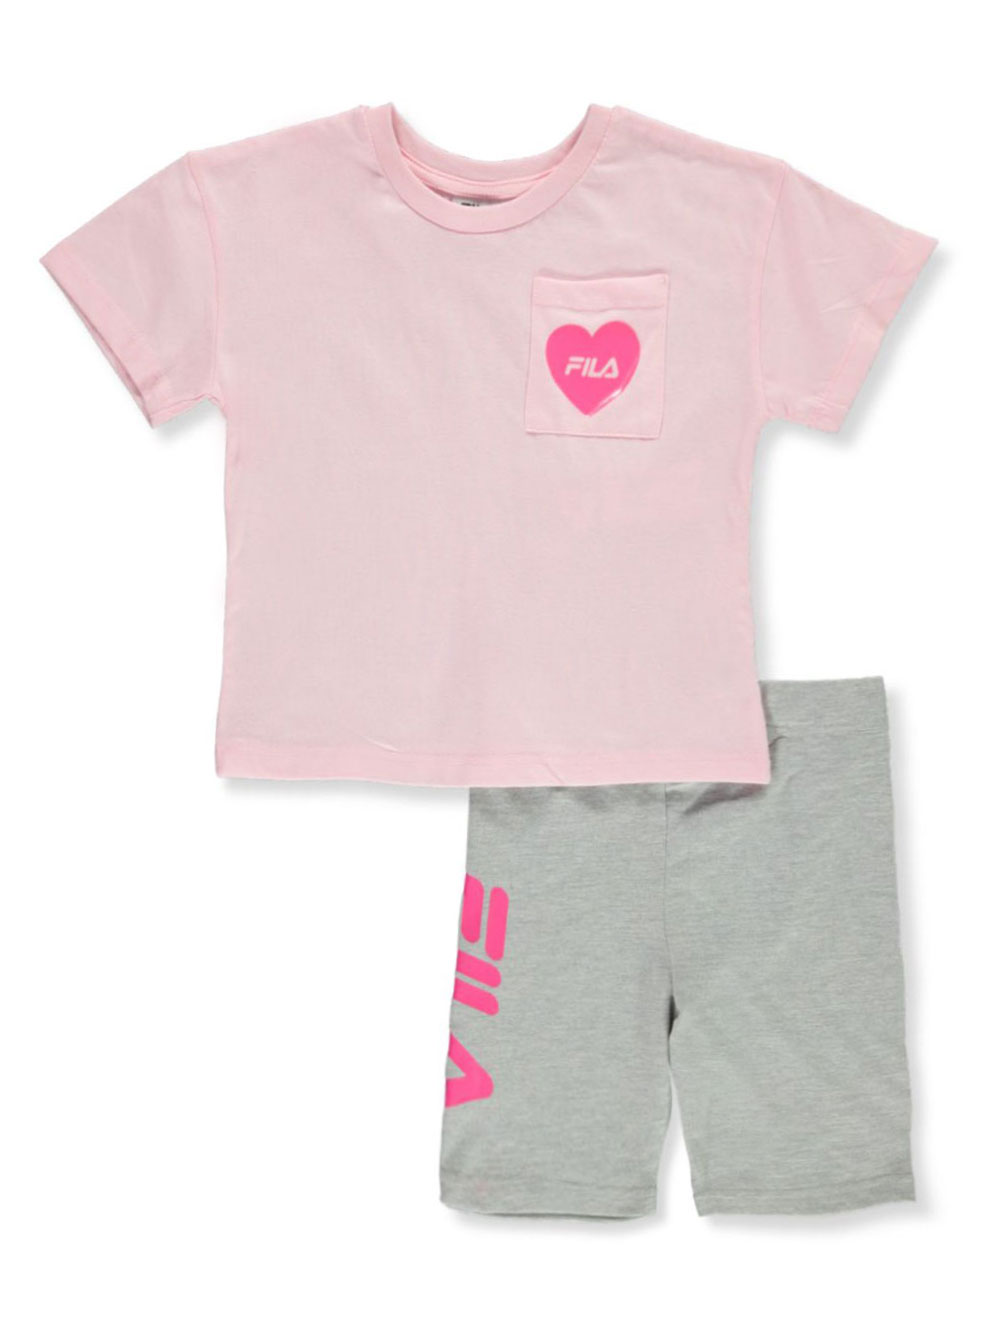 Size 8 Short Sets for Girls